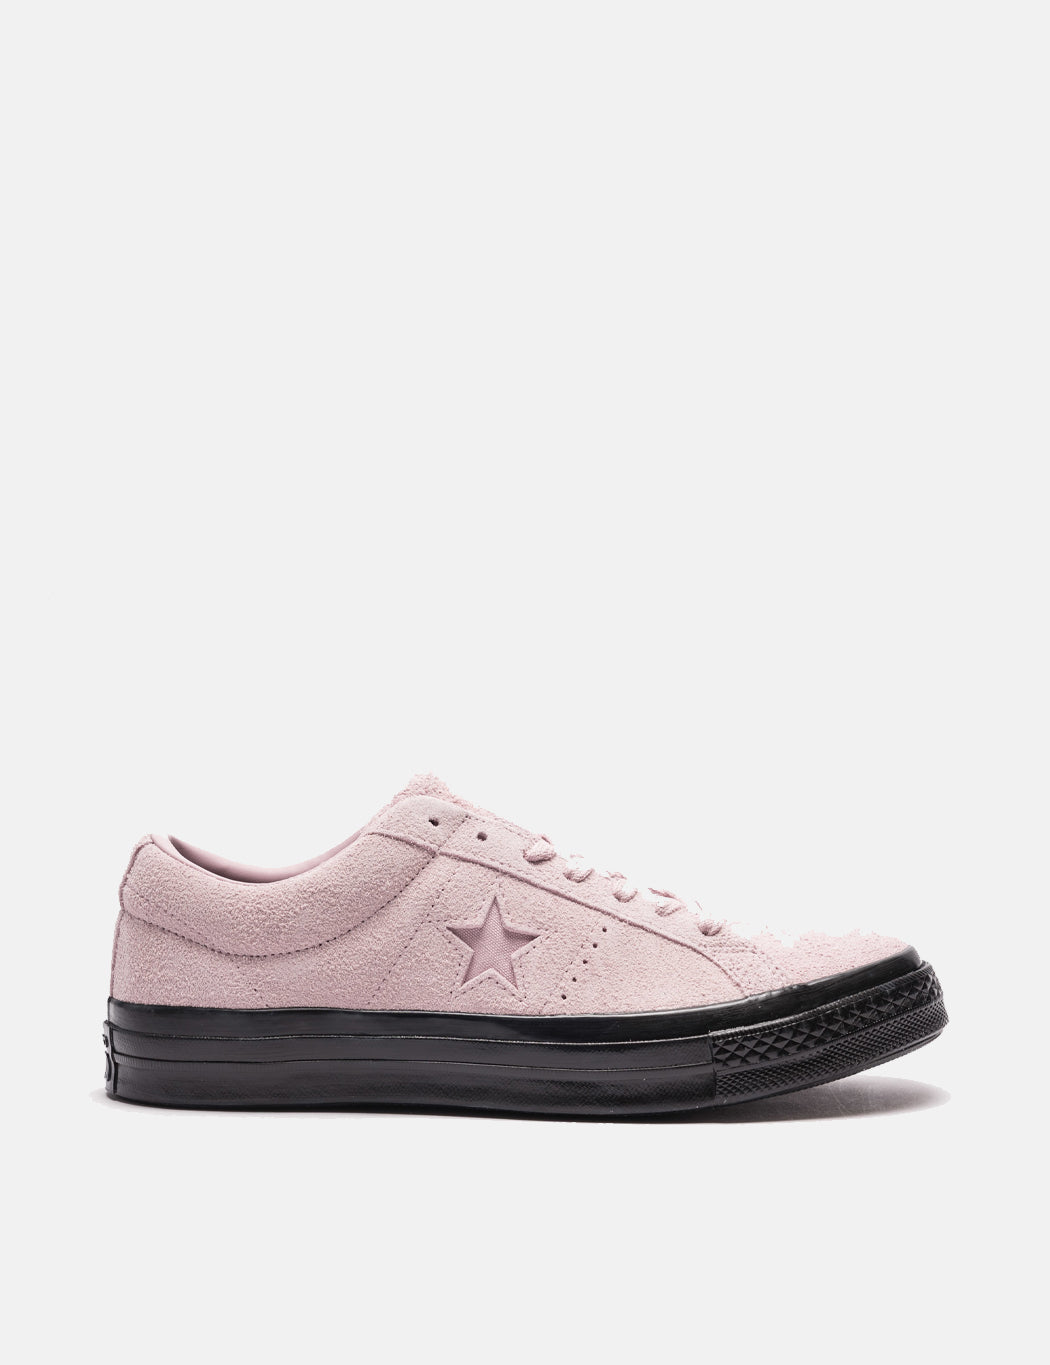 Converse One Star Ox Low Suede (163374C) in Plum Chalk Black ccca5b986